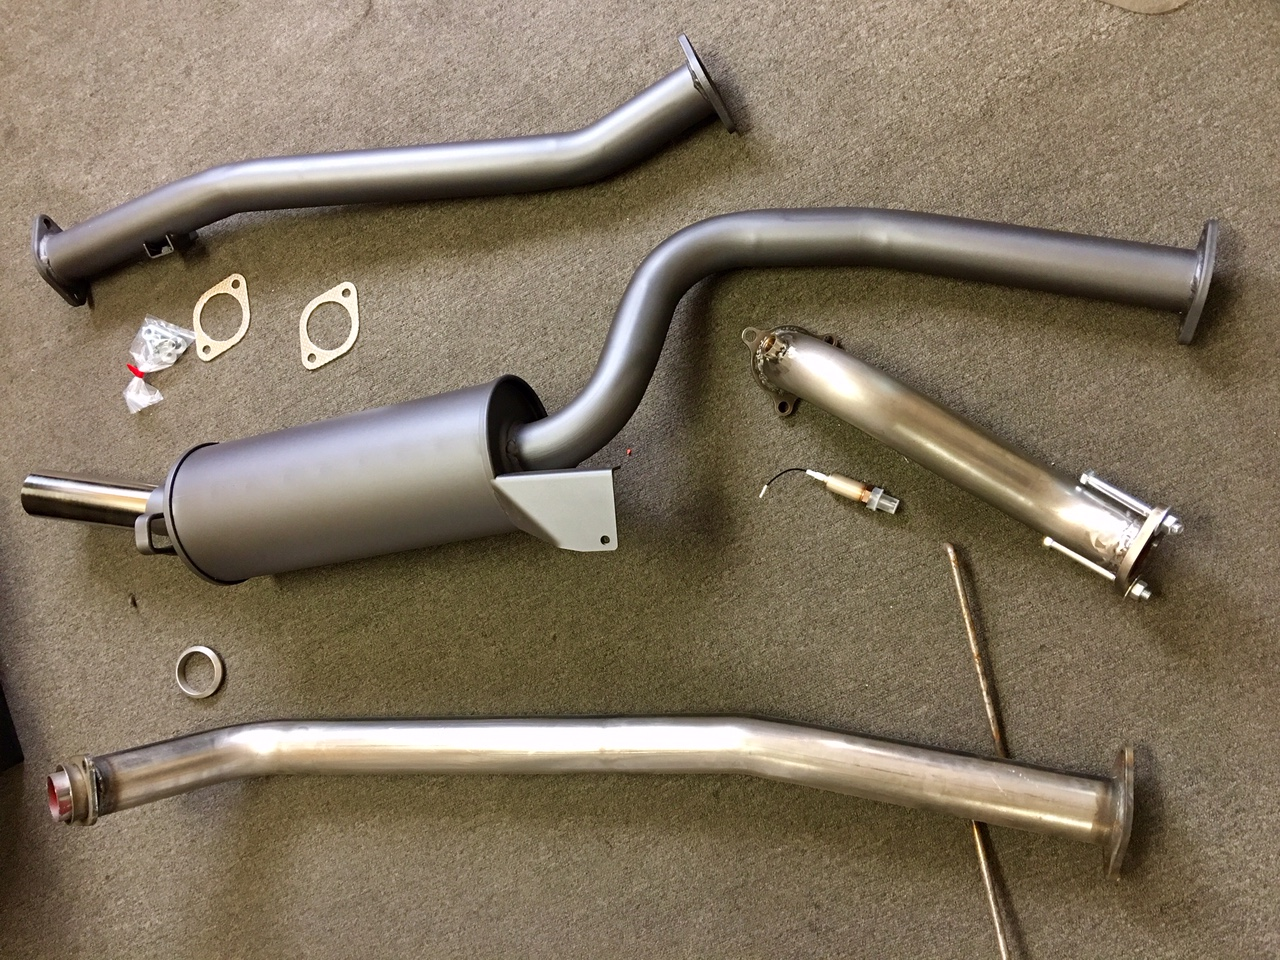 Exhaust Components and Upgrades